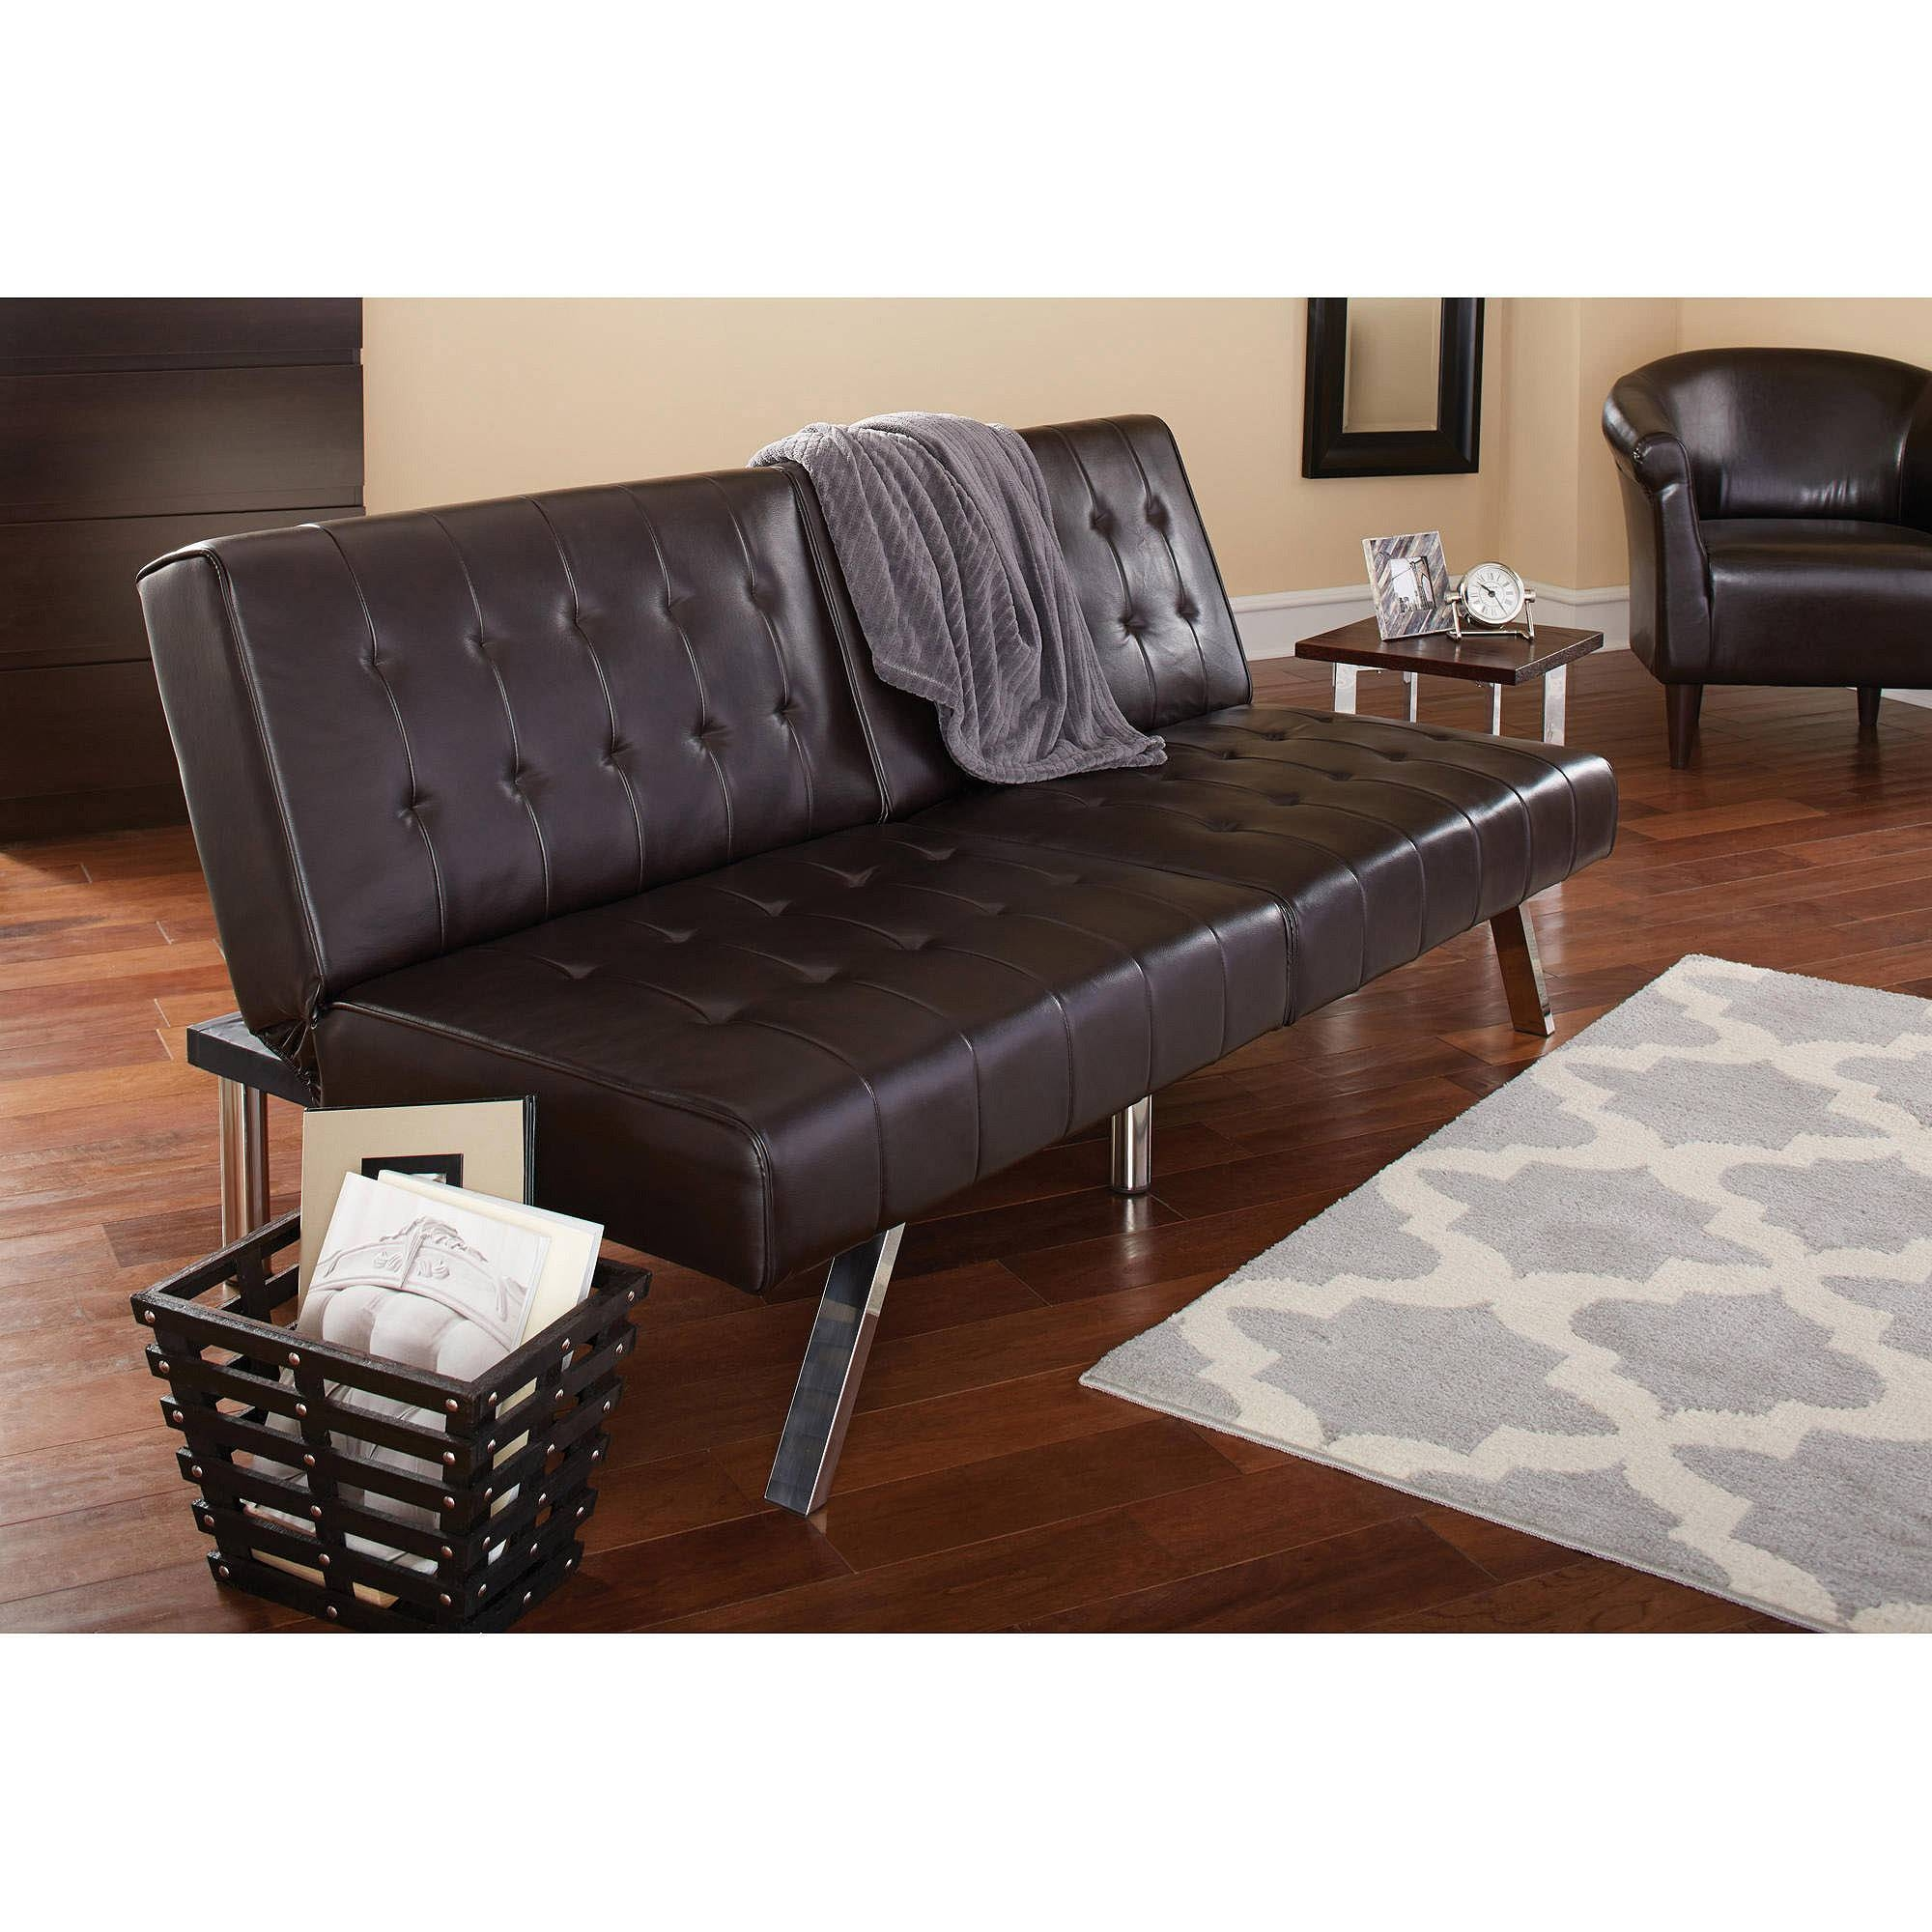 Mainstays Morgan Faux Leather Tufted Convertible Futon, Brown in Convertible Queen Sofas (Image 6 of 15)